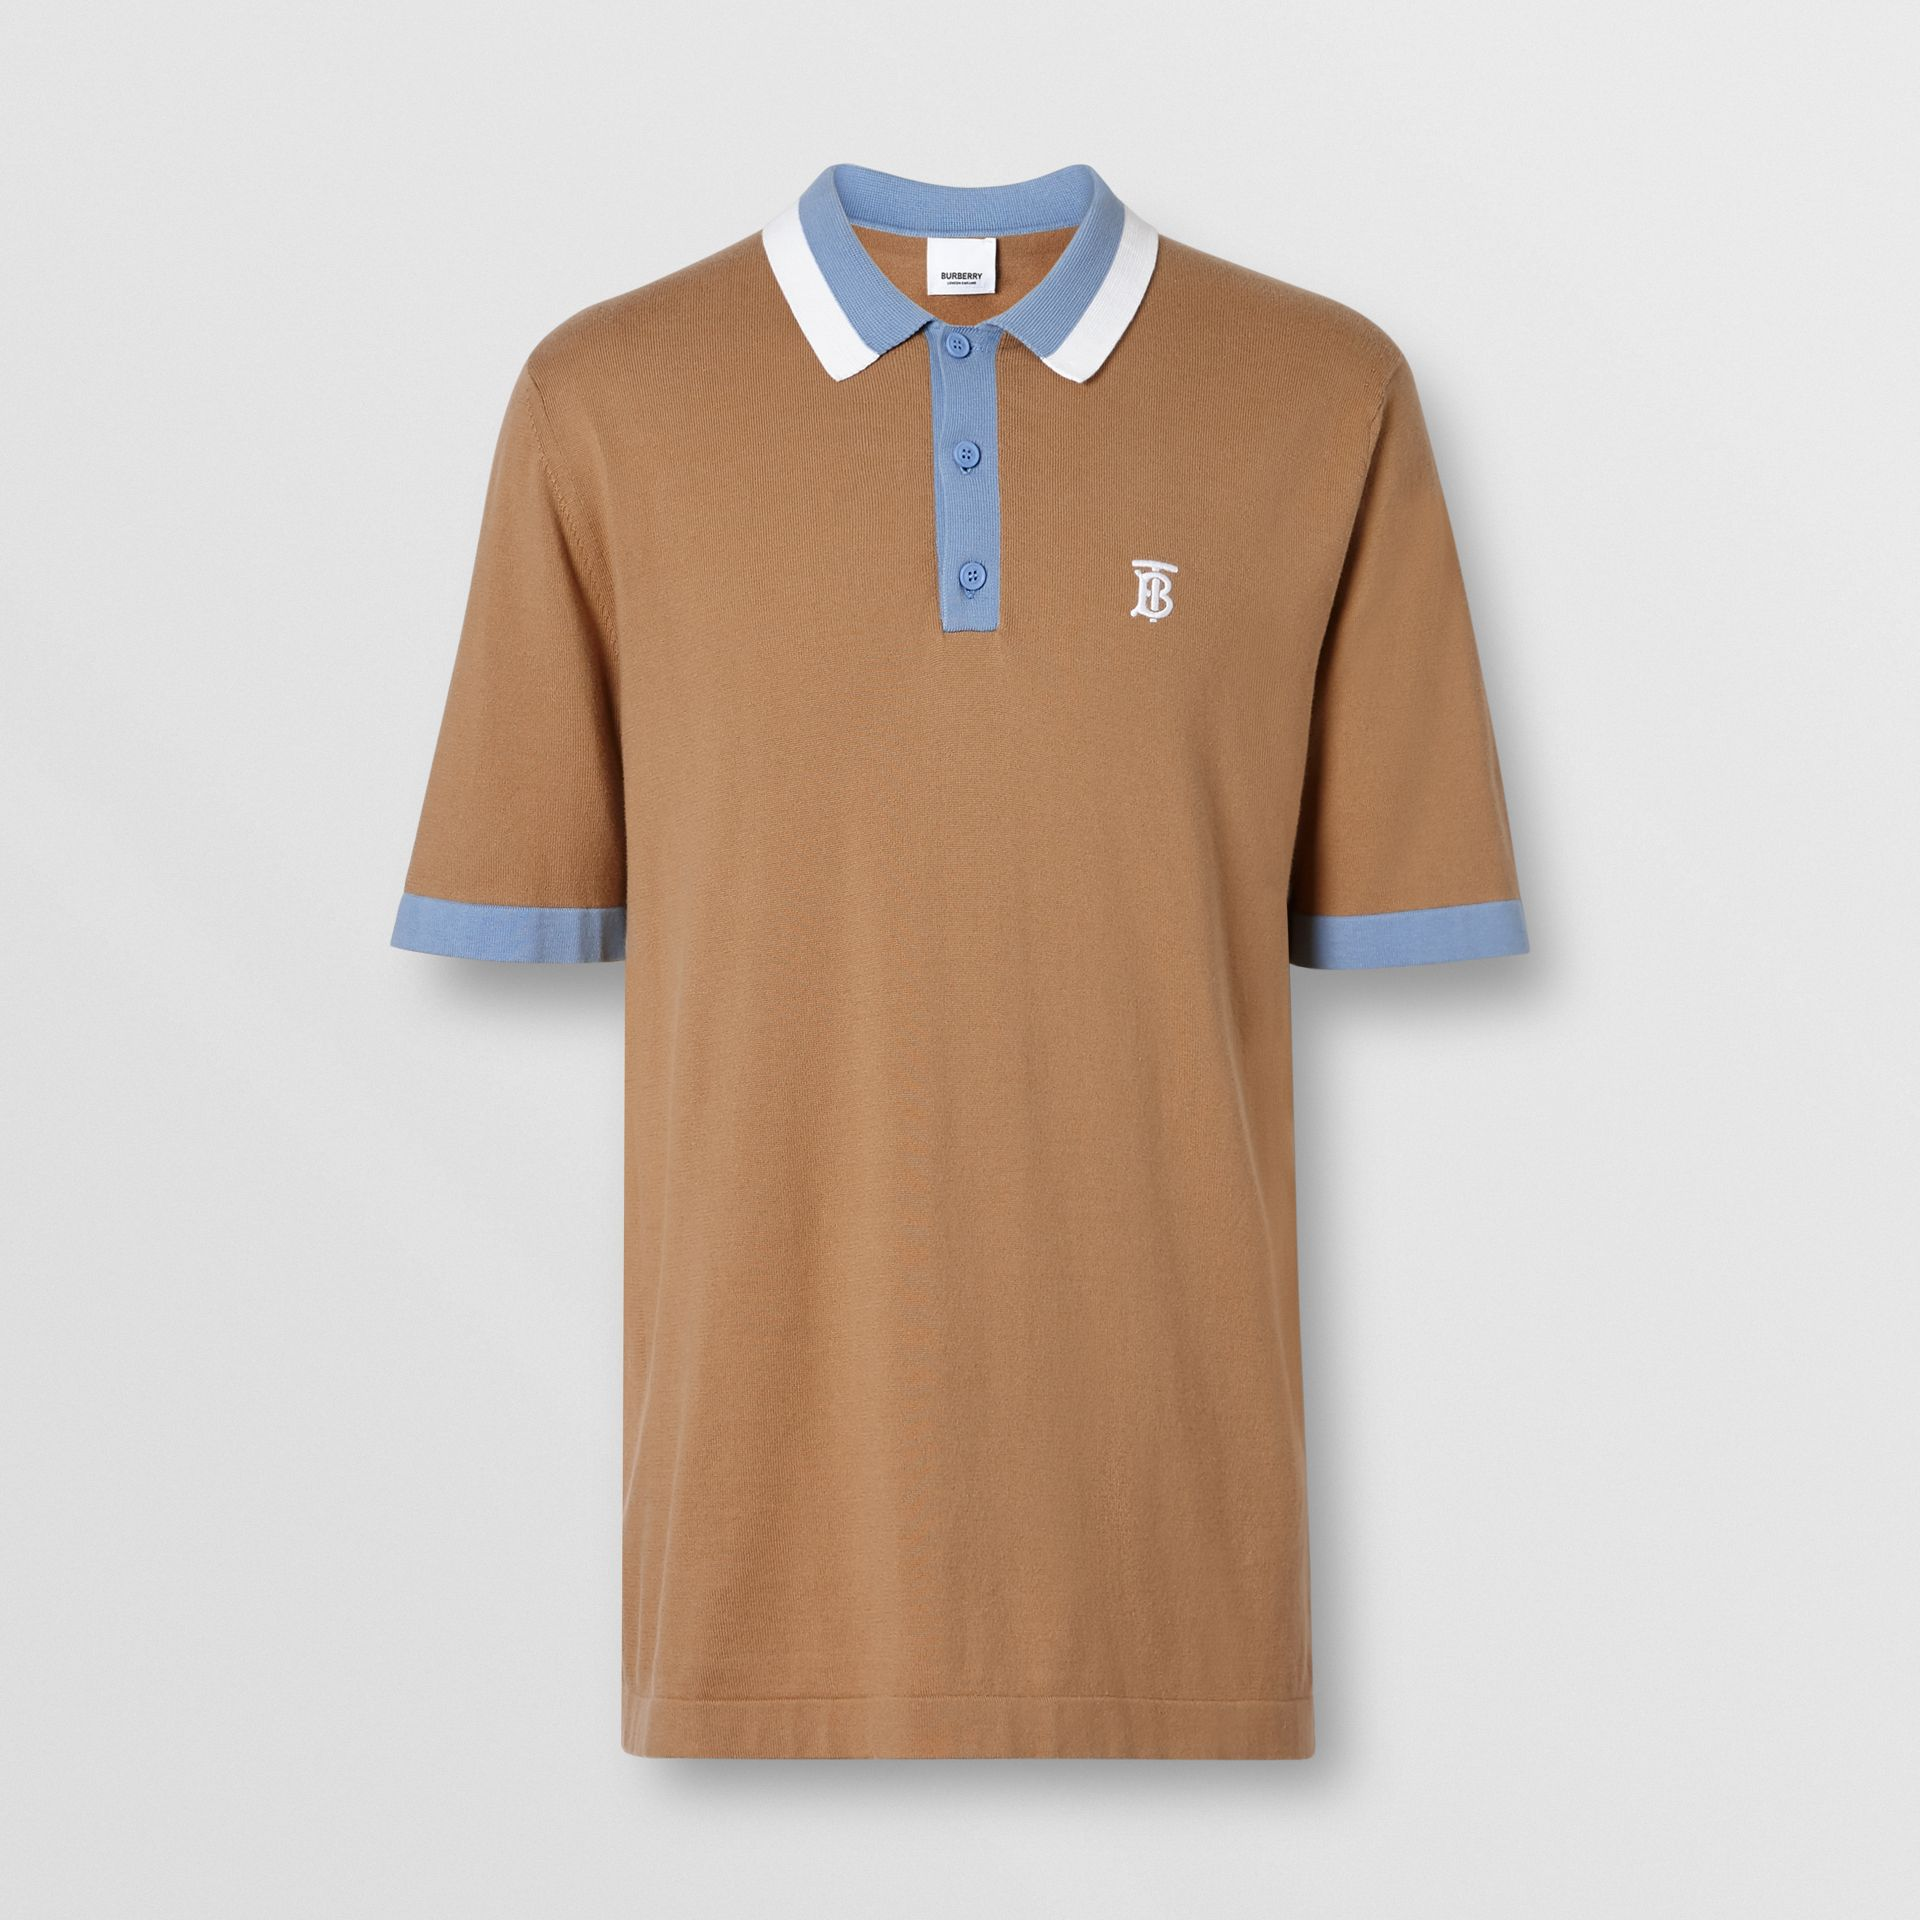 Monogram Motif Tipped Cotton Polo Shirt in Camel - Men | Burberry Canada - gallery image 3